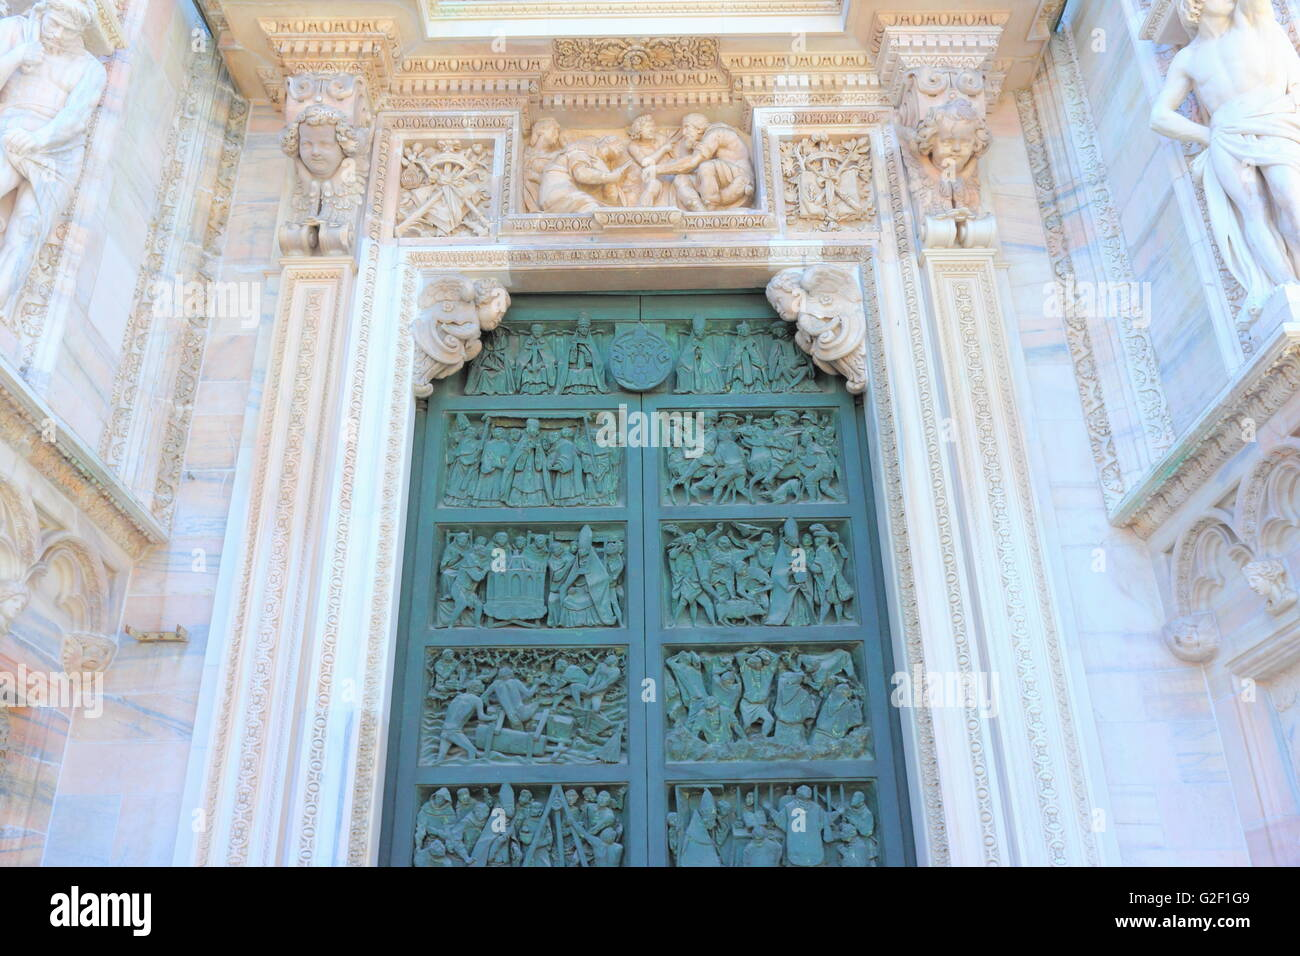 Doors of a Milan Cathedral, Italy - Stock Image